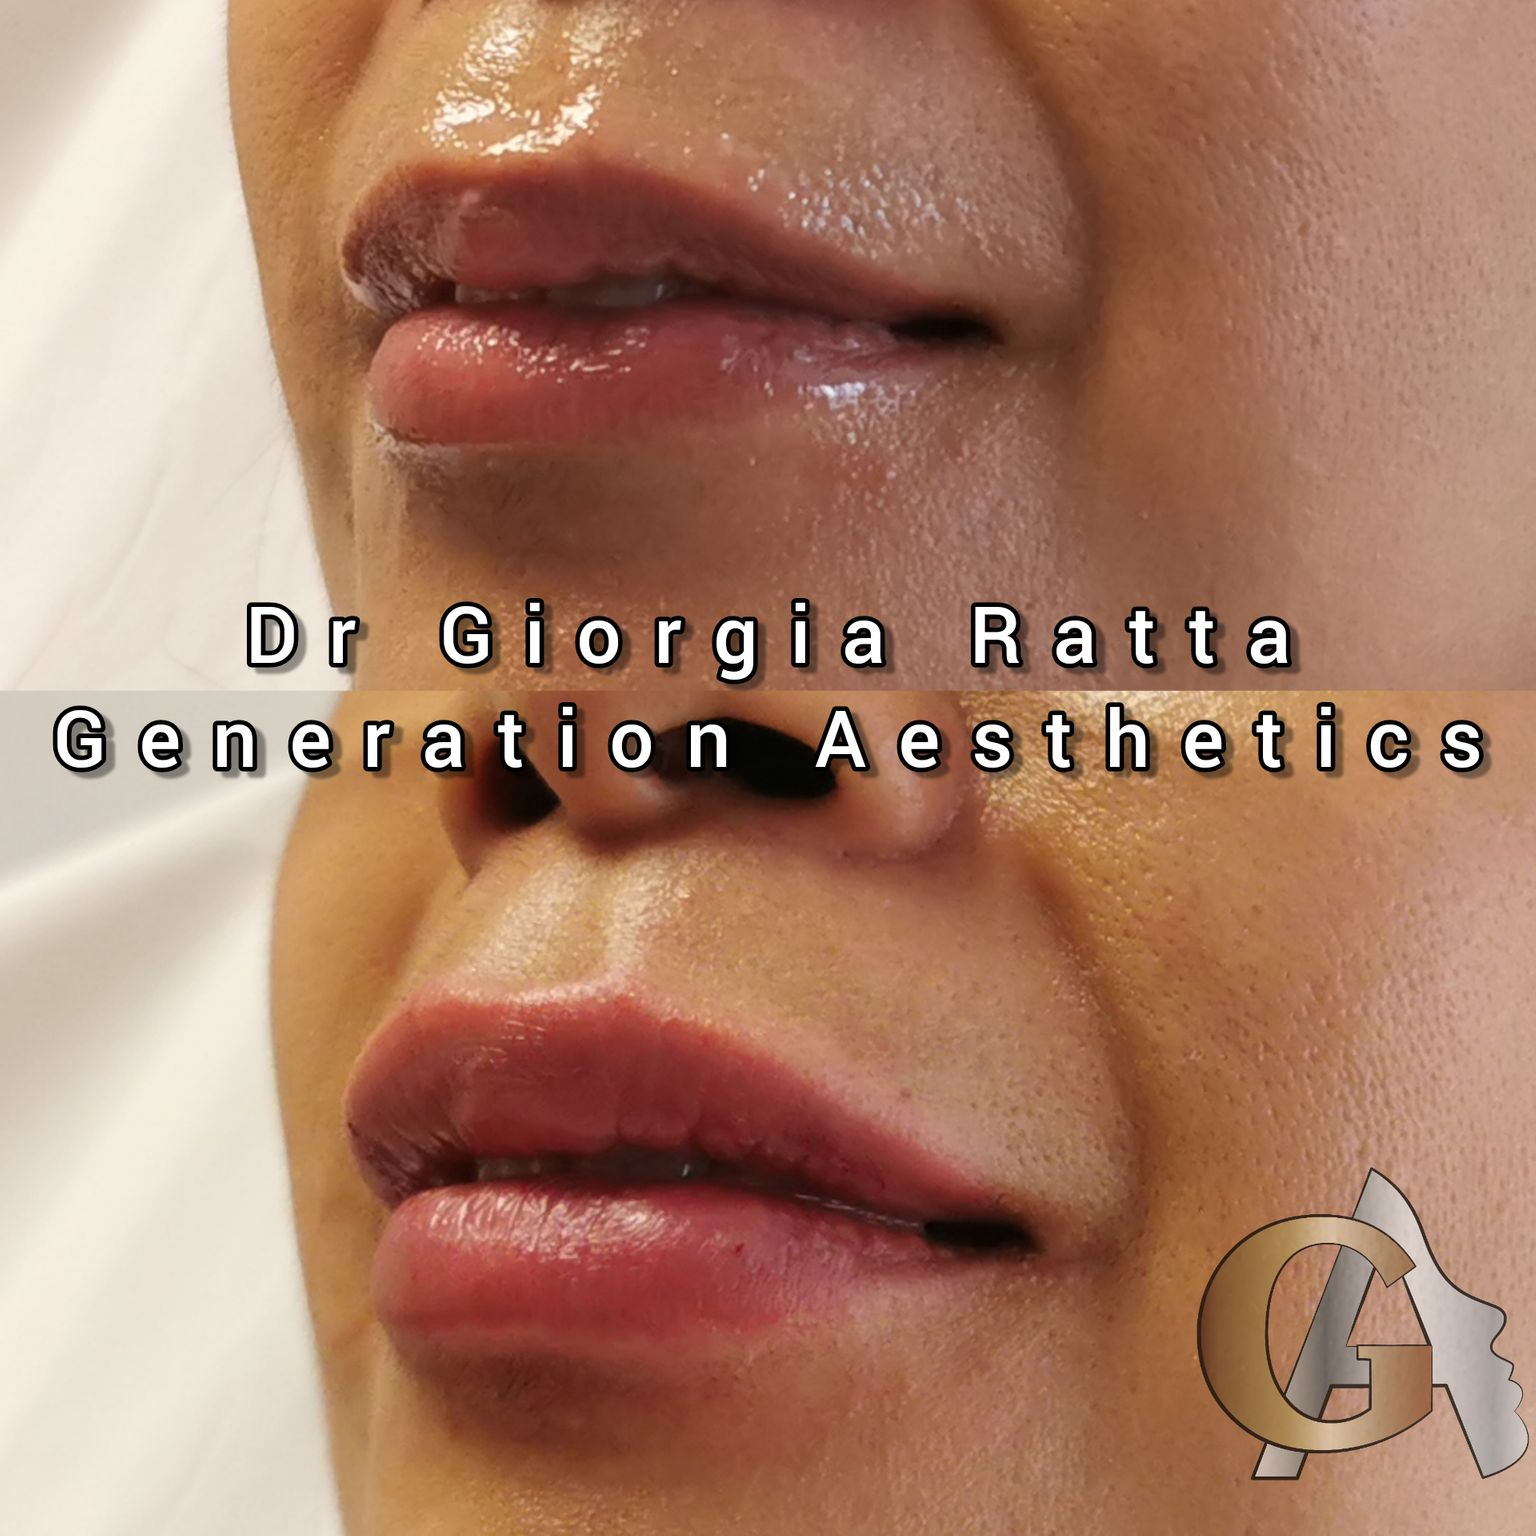 Dr Giorgia Ratta - lip filler before and after - Glowday